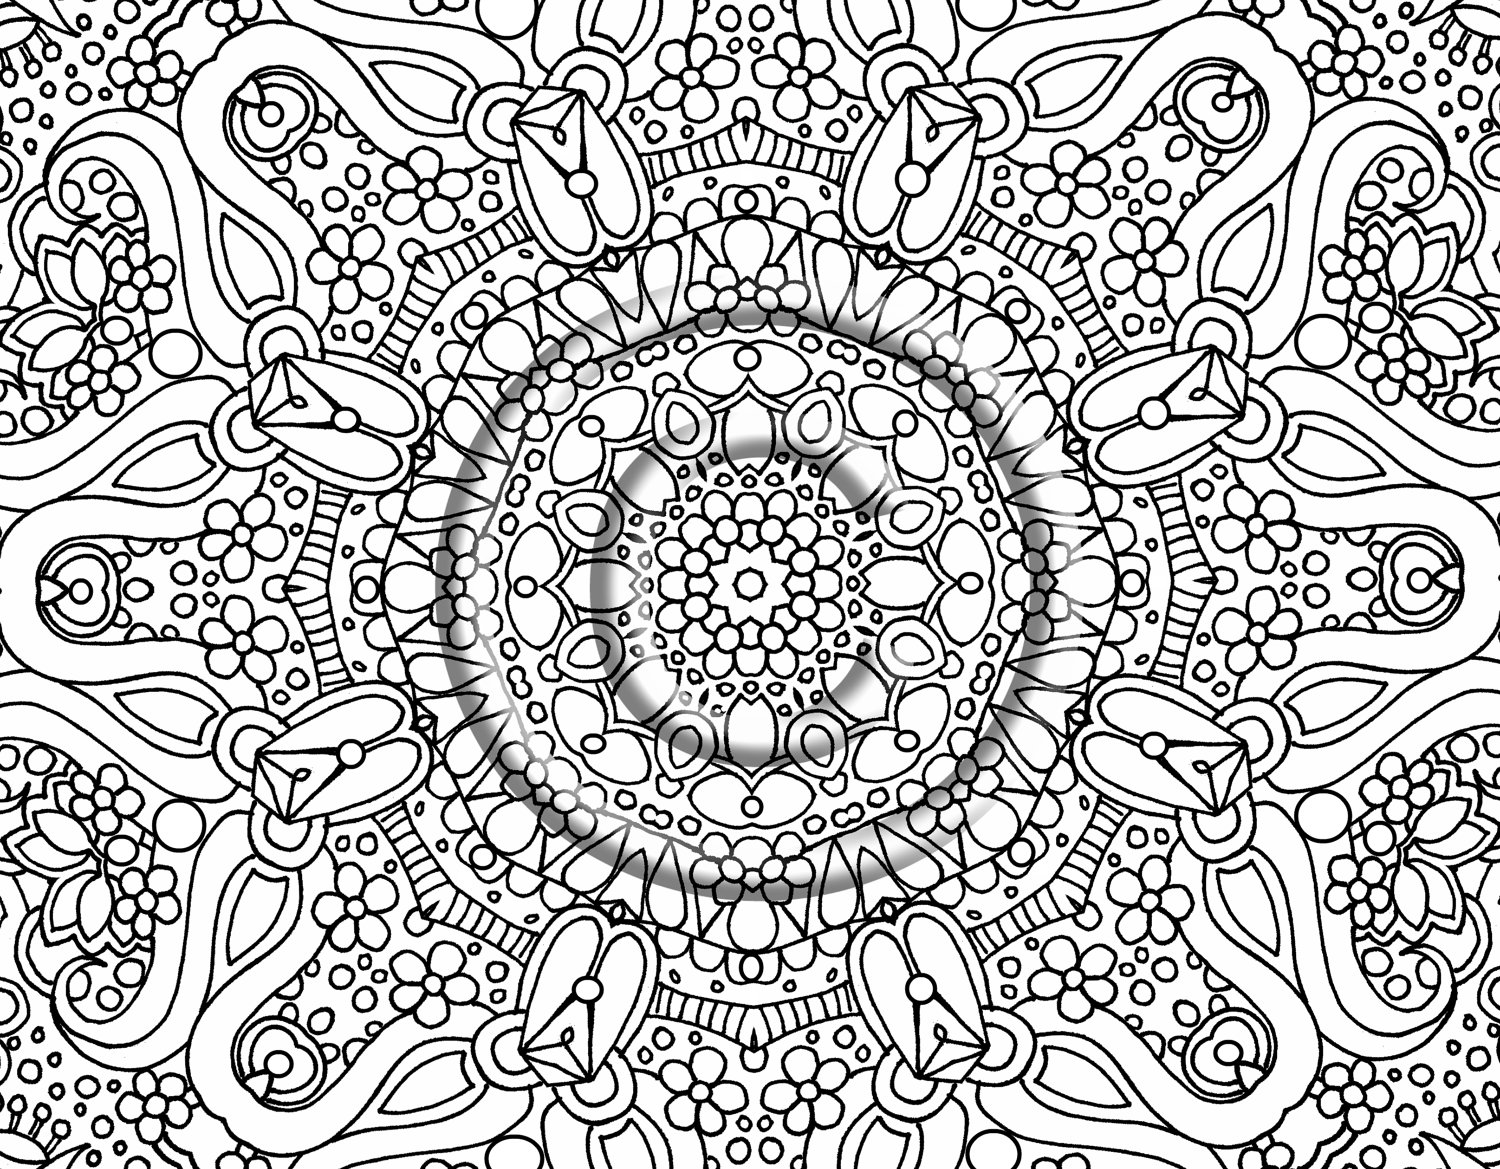 coloring prints for adults printable coloring pages for adults 15 free designs adults prints coloring for